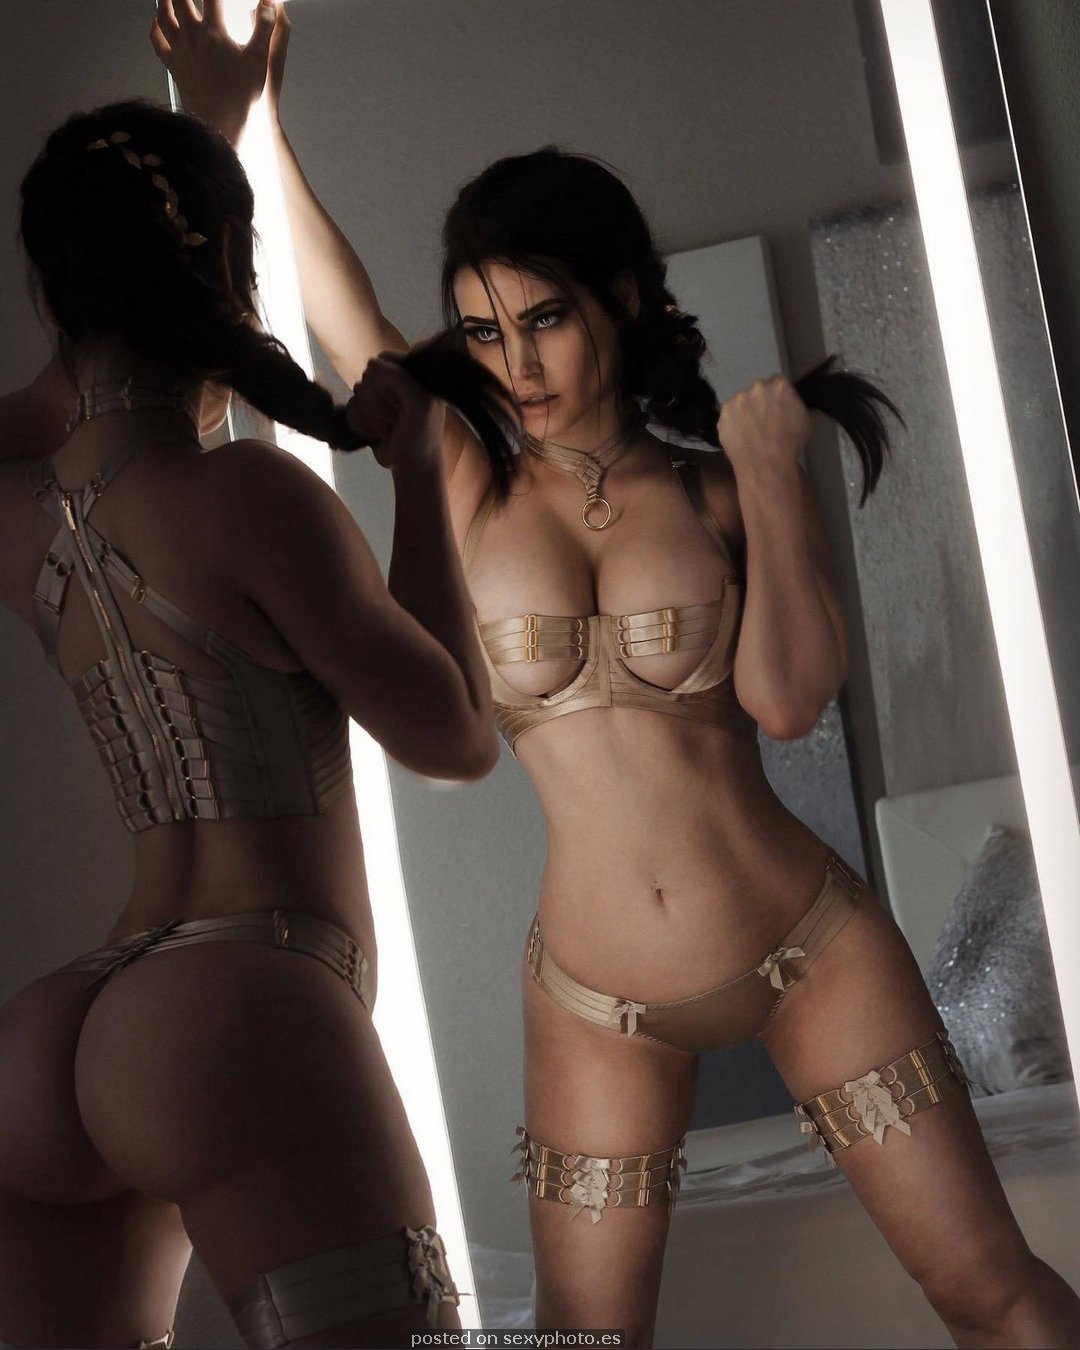 Hot and sexy girls, sexyphotos_19